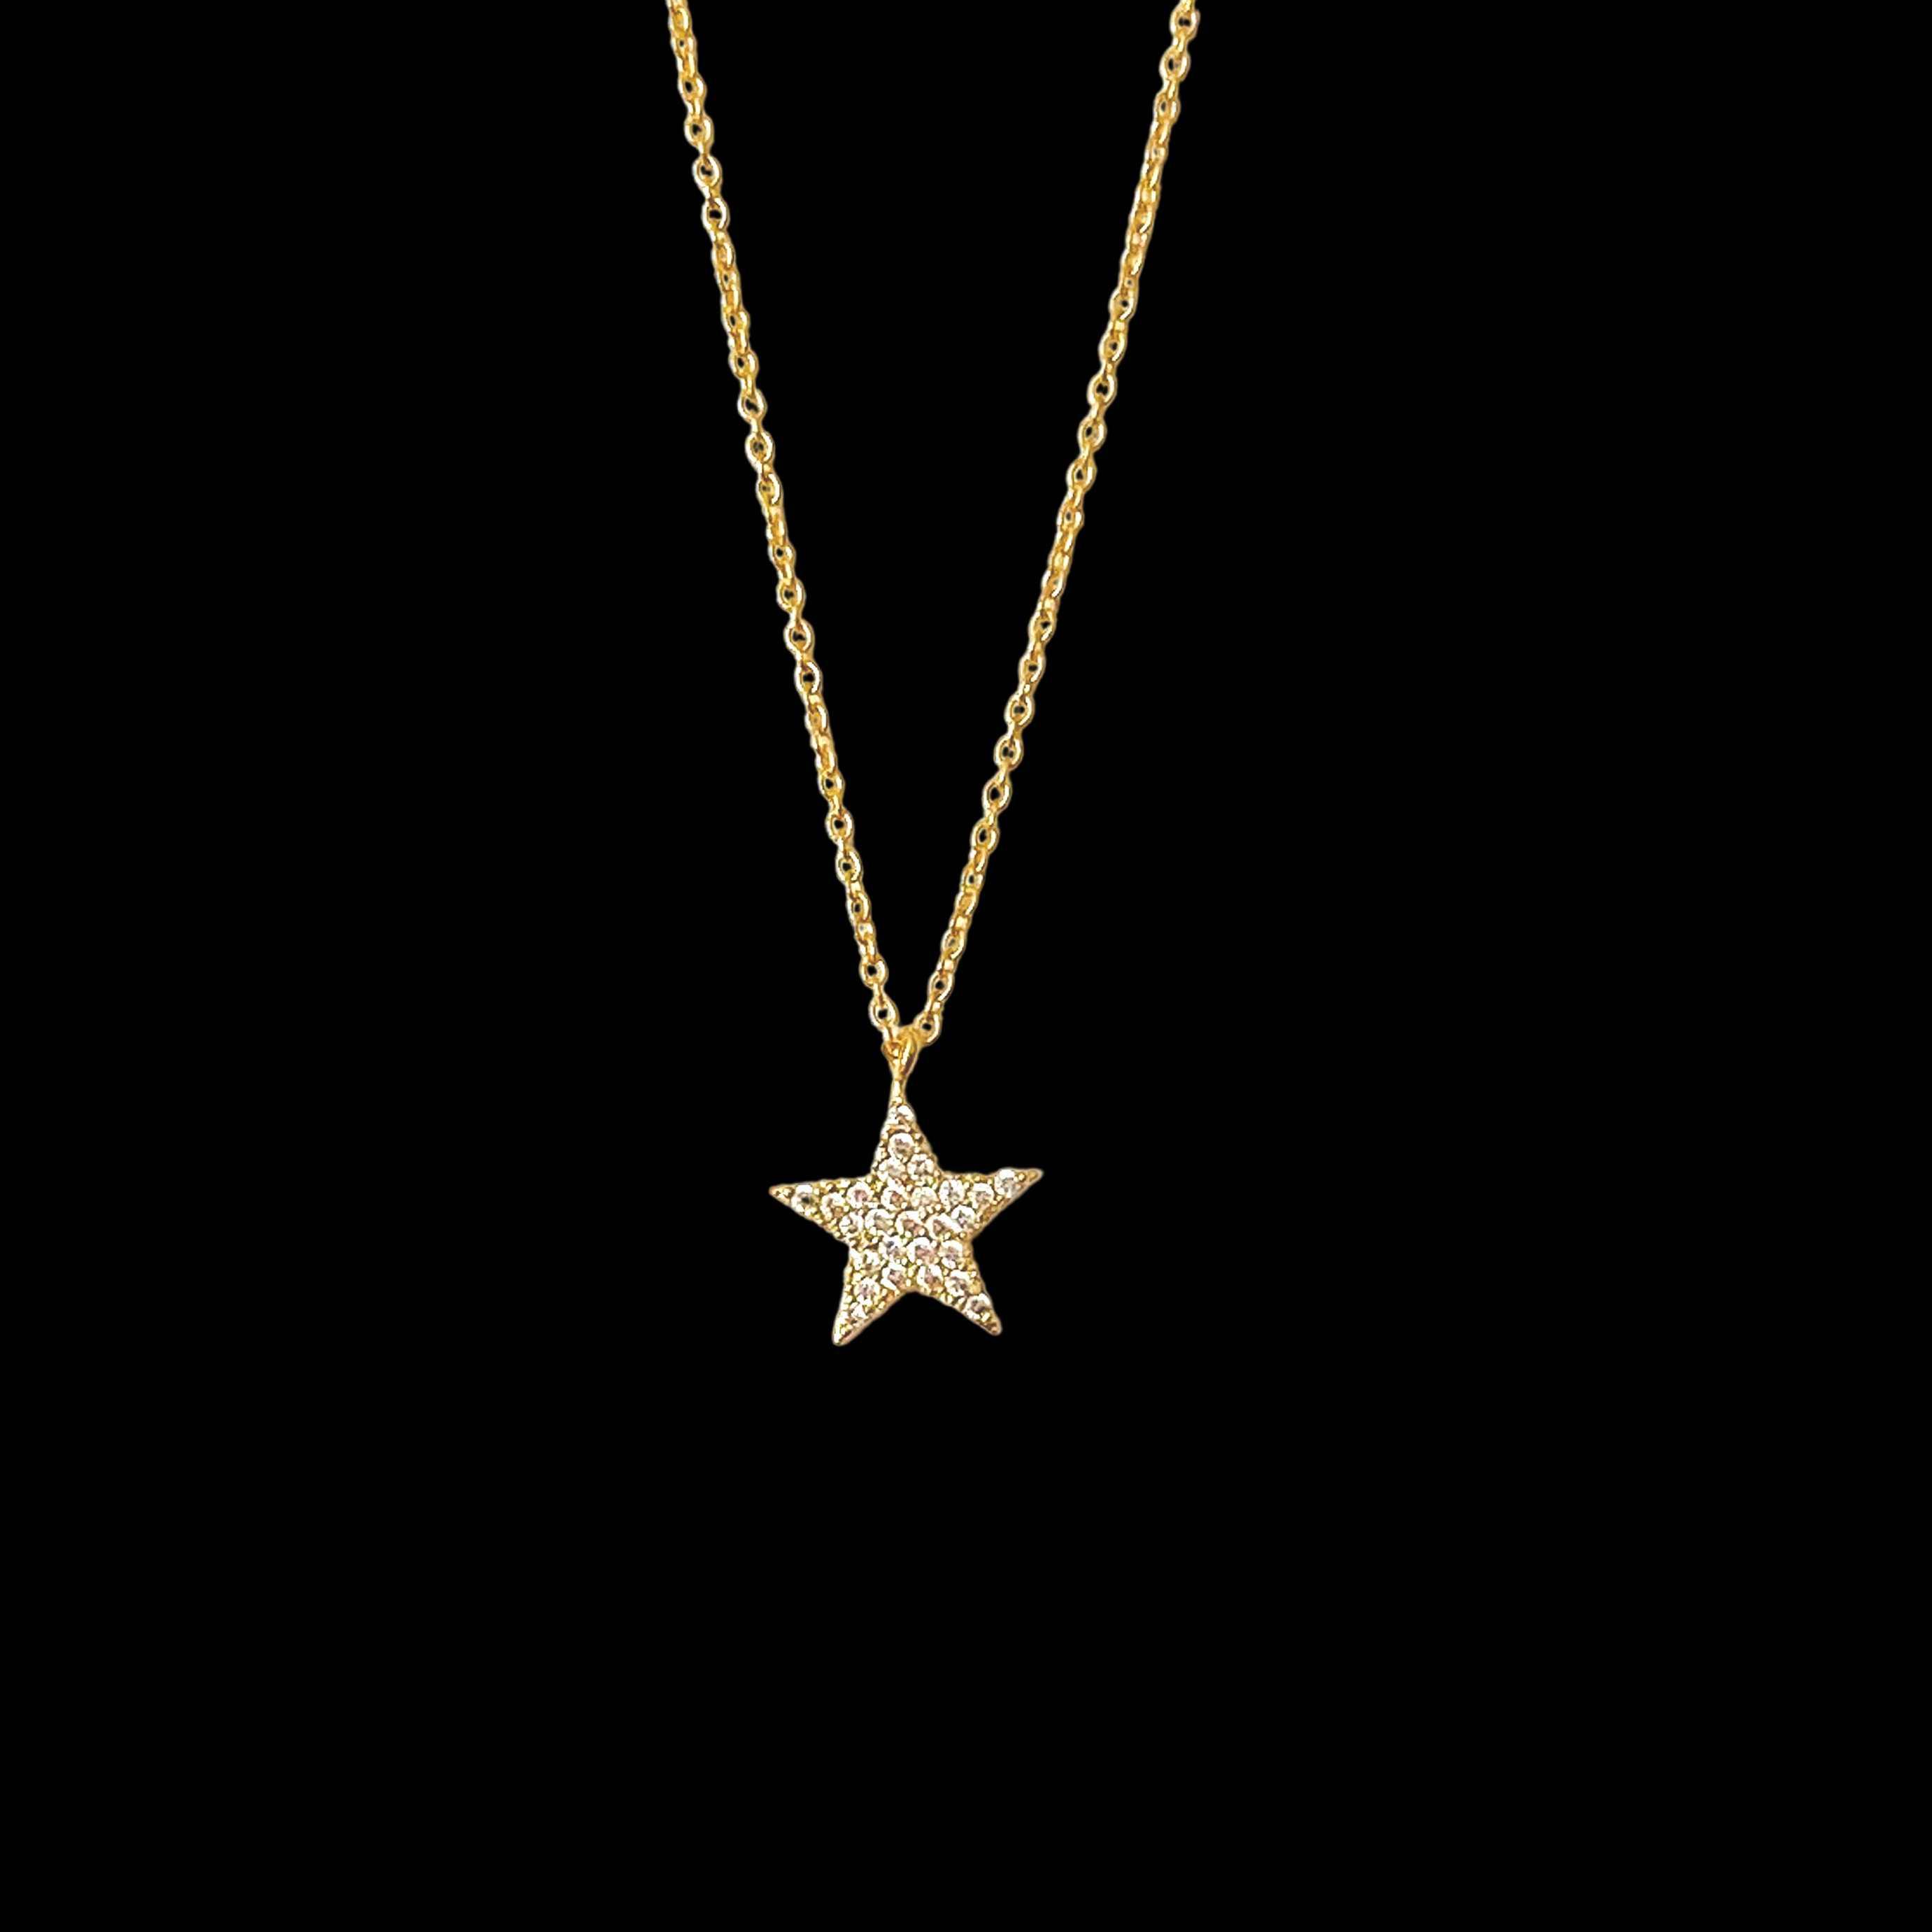 Image of Star Pendant Necklace